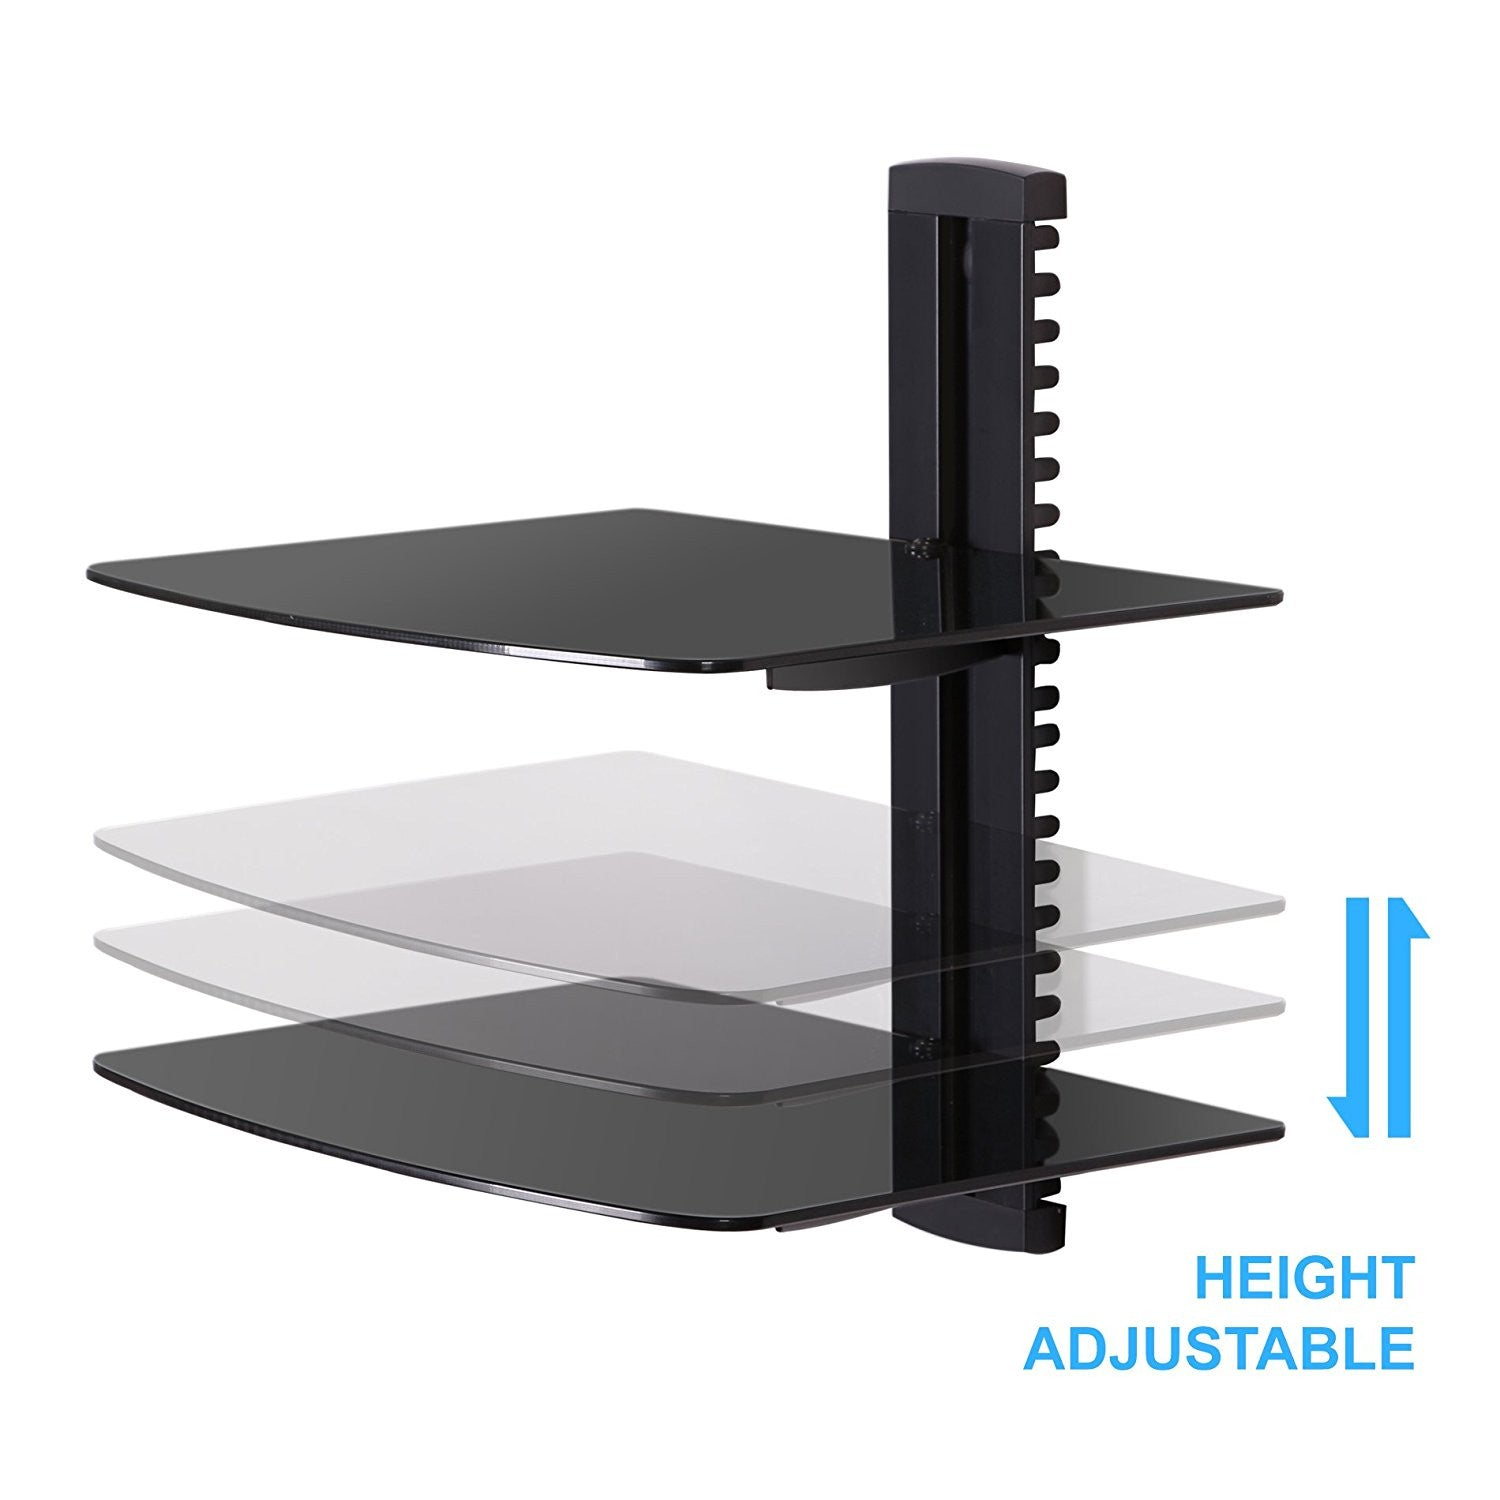 Shelves Black Glass 55 x 15 from 6 MM with fixing kit available to measure